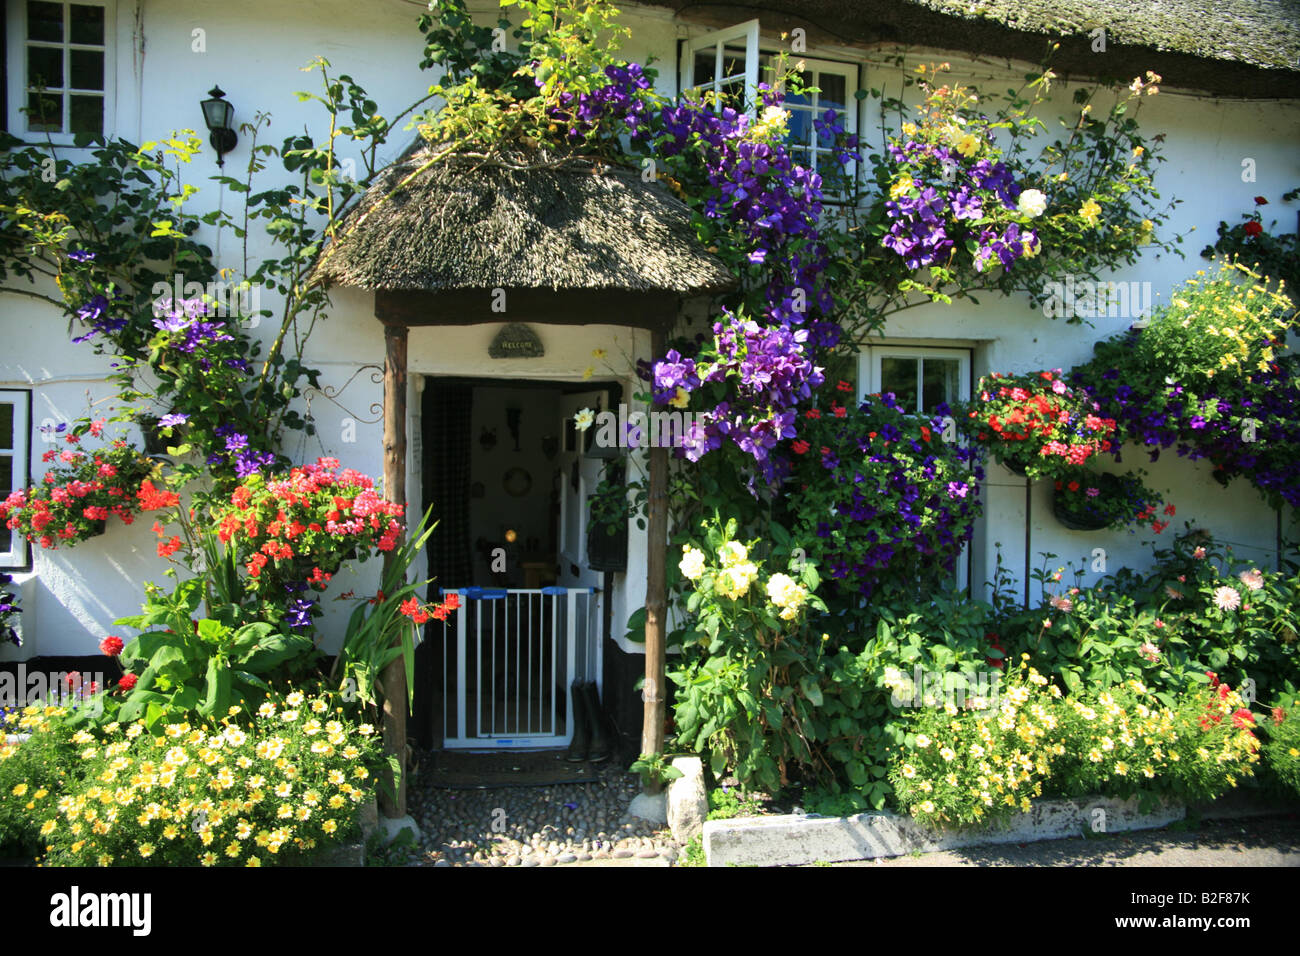 Brilliant Beautiful White Painted Cob And Thatch Cottages With Summer Flower Largest Home Design Picture Inspirations Pitcheantrous